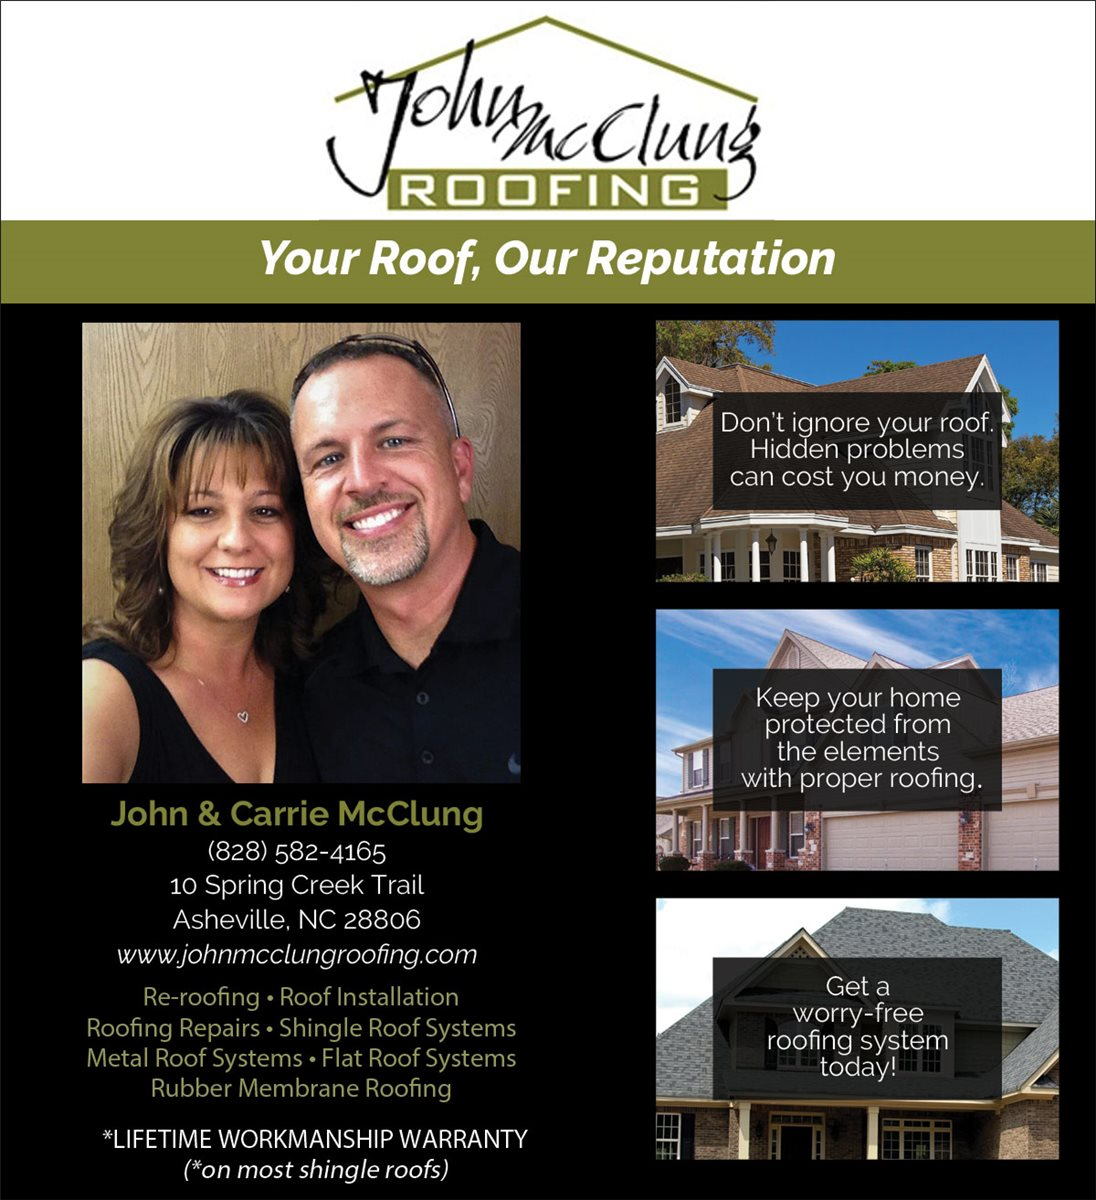 Christians In Business John Mcclung Roofing Details